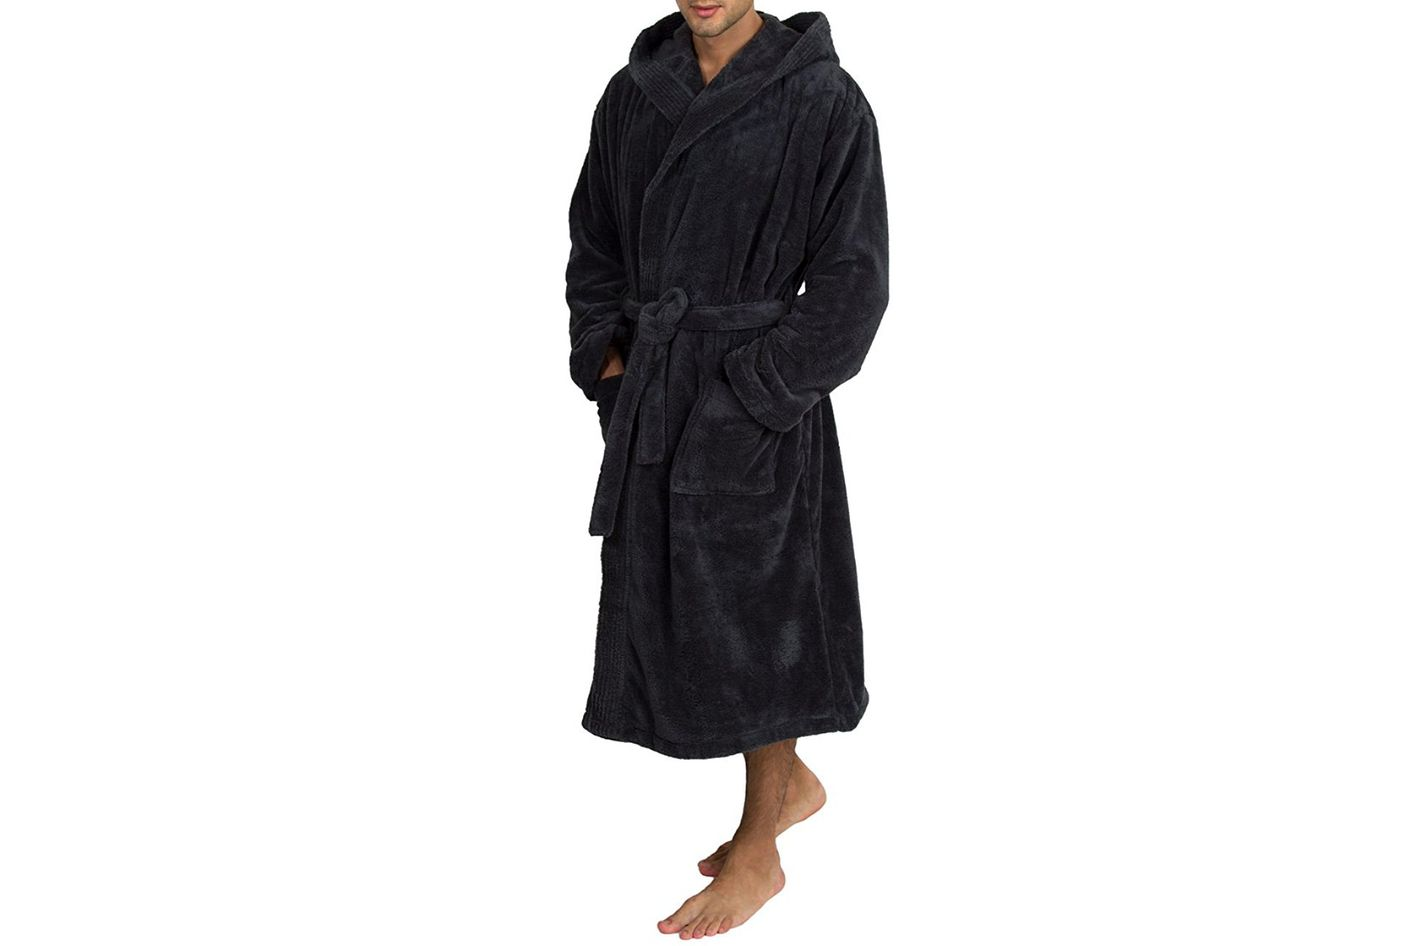 best bathrobes for women silk terry cloth satin robes. Black Bedroom Furniture Sets. Home Design Ideas